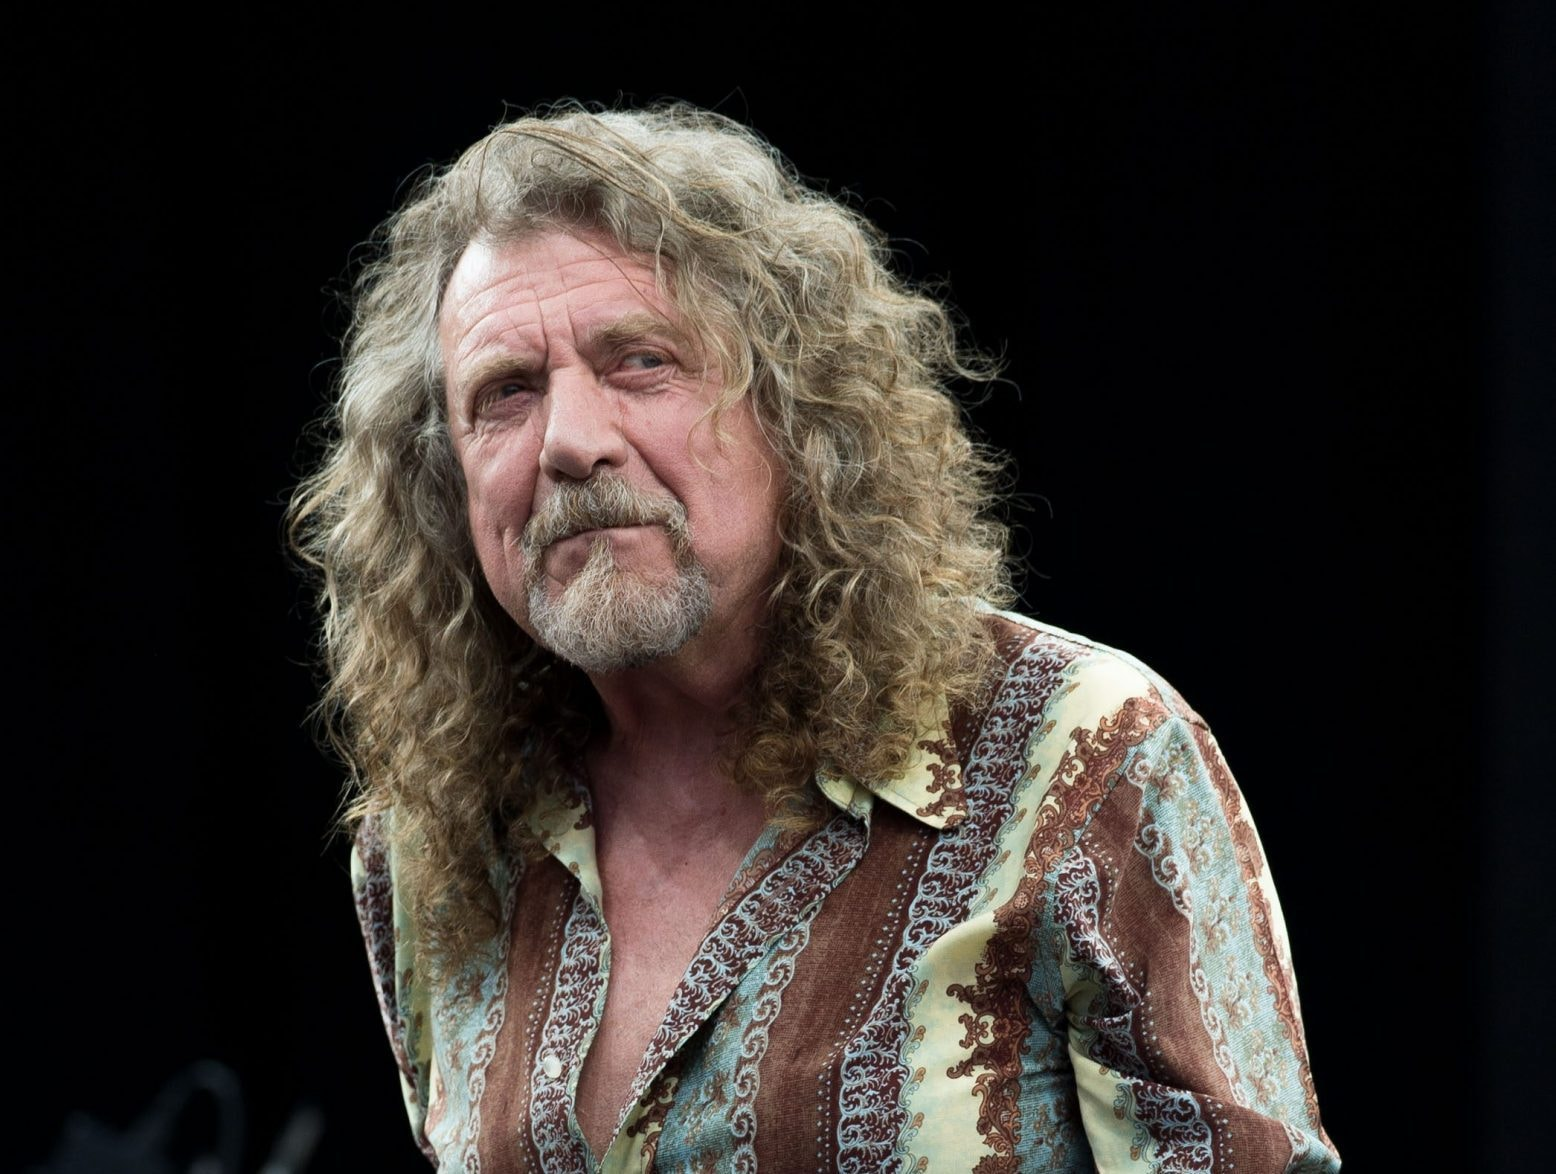 robert plant photographed recently - HD1556×1174